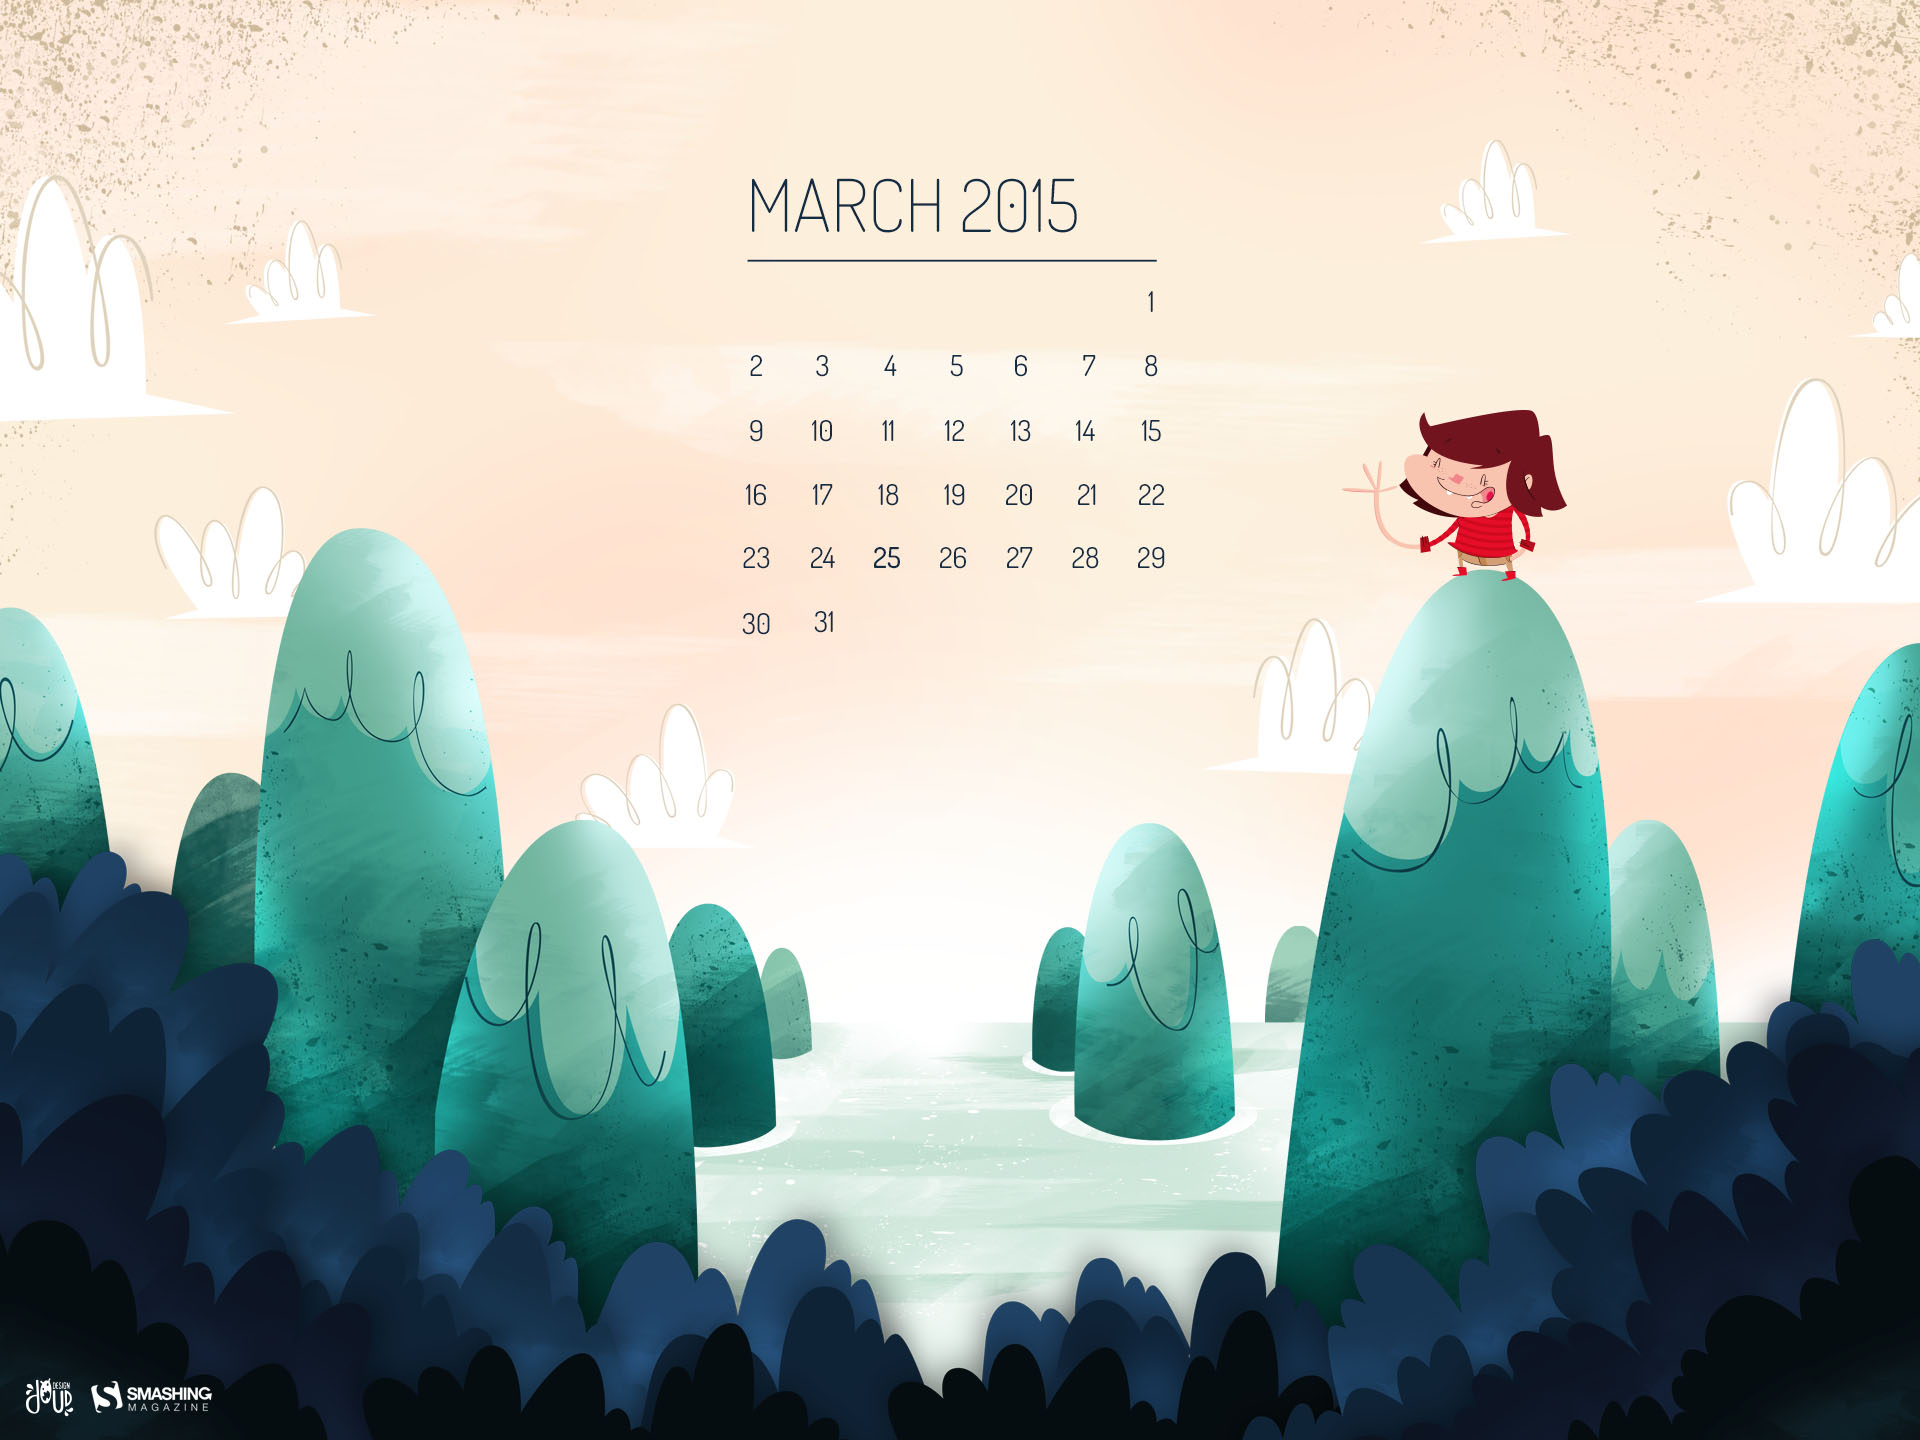 Desktop Wallpaper Calendars March 2015 Smashing Magazine 1920x1440